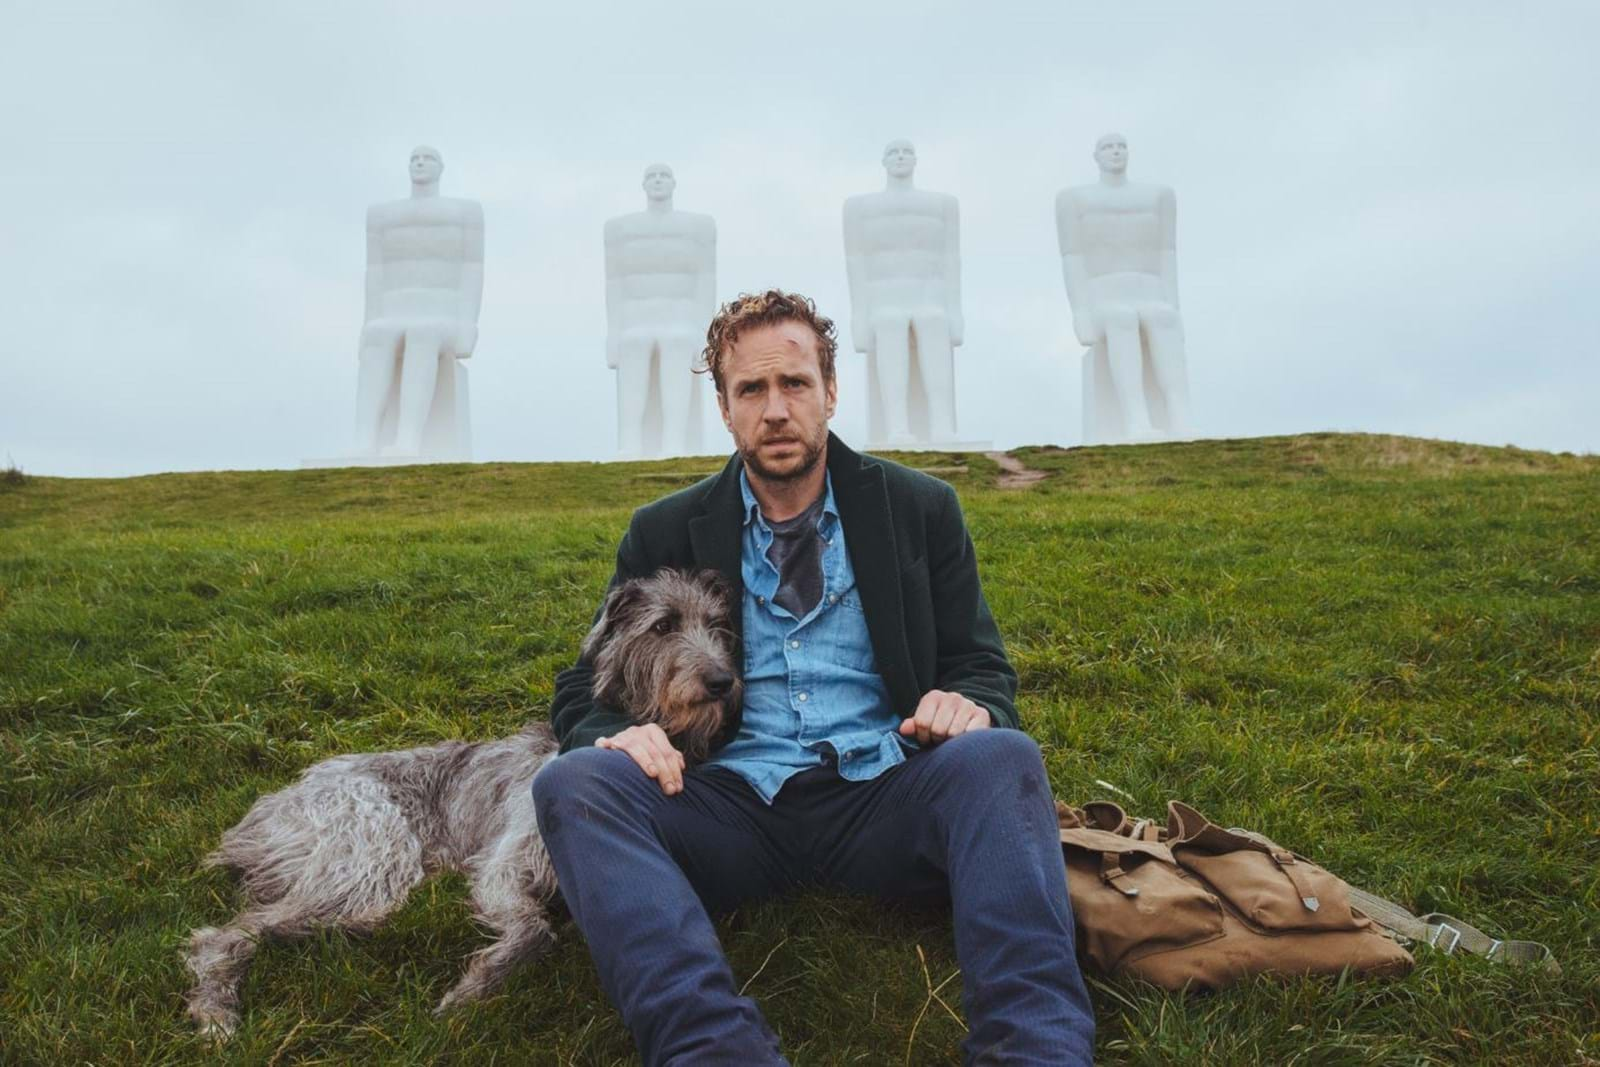 FIRST LOOK AT RAFE SPALL IN DENMARK AS PRINCIPAL PHOTOGRAPHY WRAPS